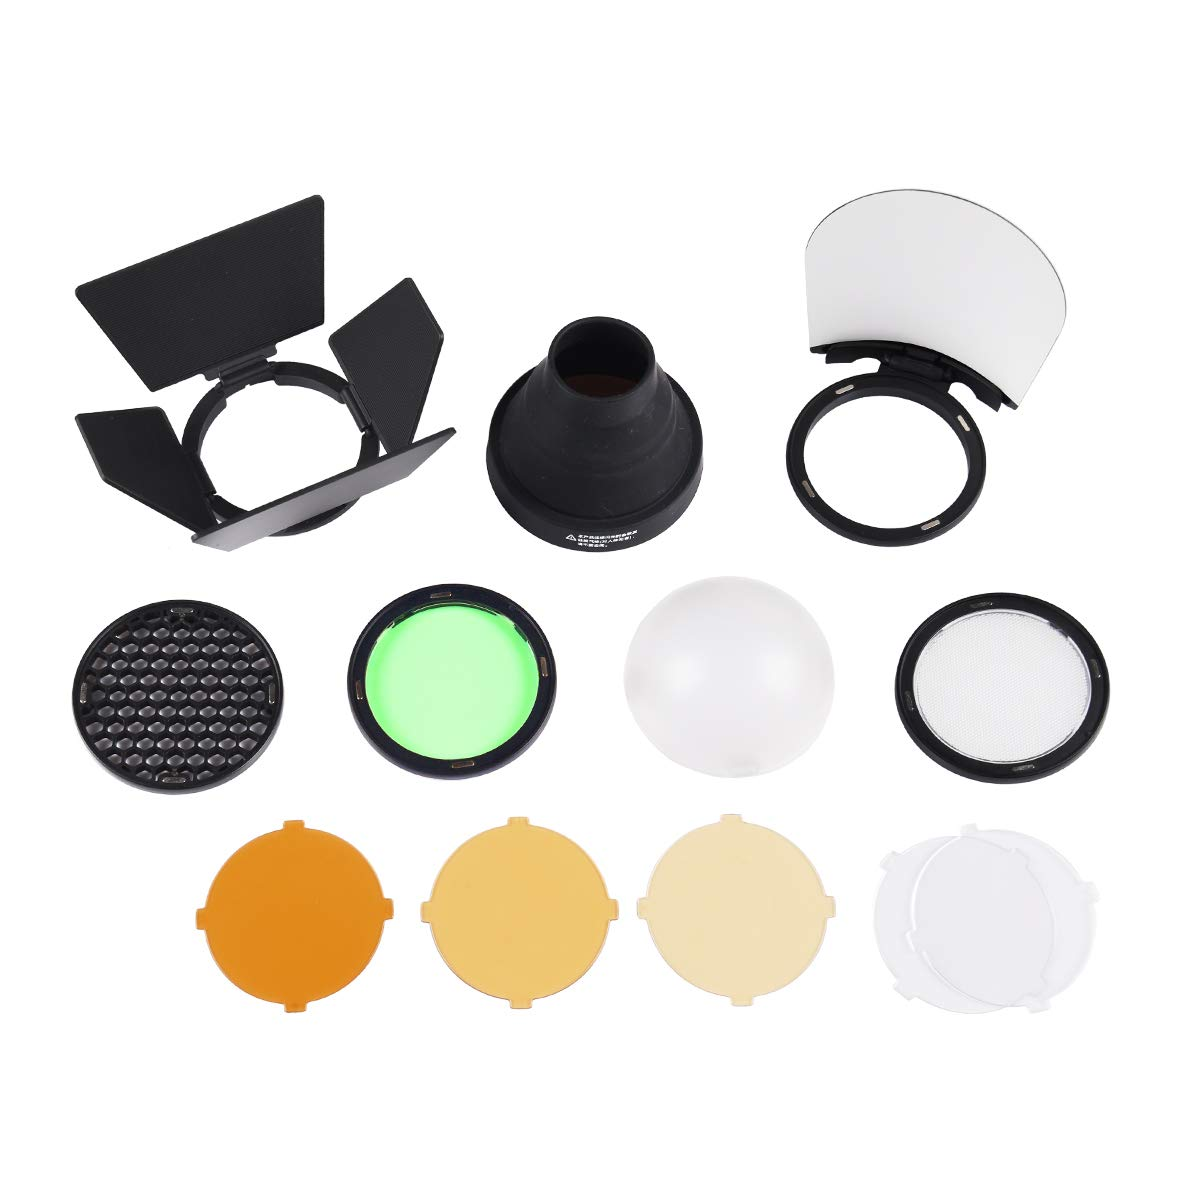 Godox AK-R1 Barn Door, Snoot, Color Filter, Reflector, Honeycomb, Diffuser Ball Kits for Godox H200R Round Flash Head, AD200 Accessories by Godox